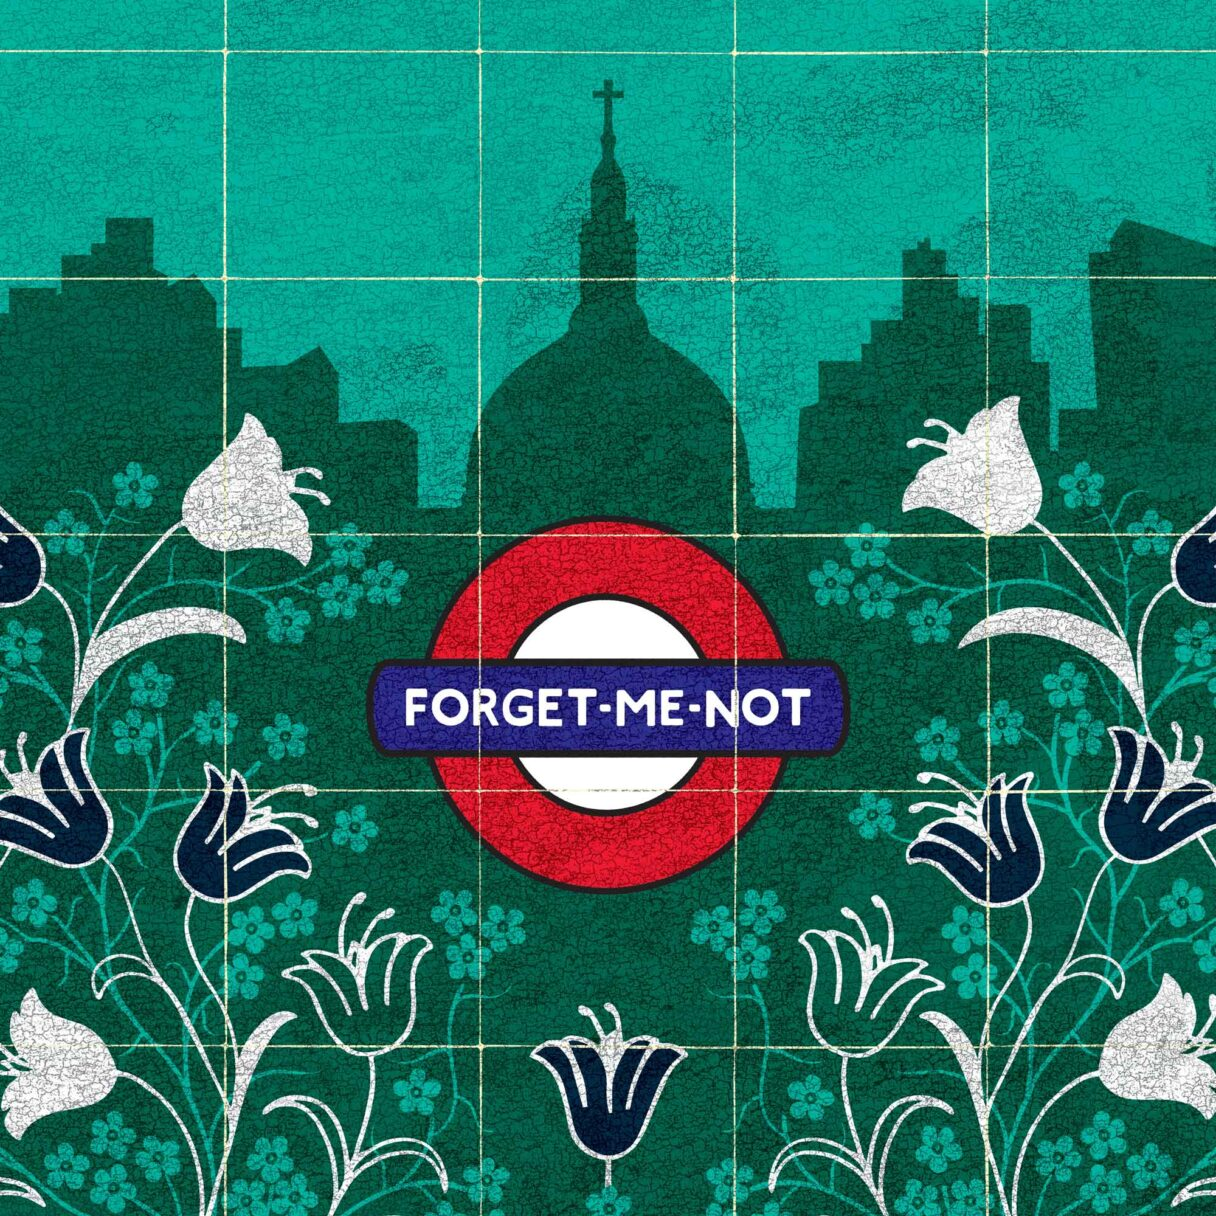 kati-lacey-illustration-editorial-conceptual-poster-postmans park-Watts-memorial-Victorian-everyday-heroes-flowers-garden-businessman-park-tulips-london-underground-suitcase-tiles-illustration